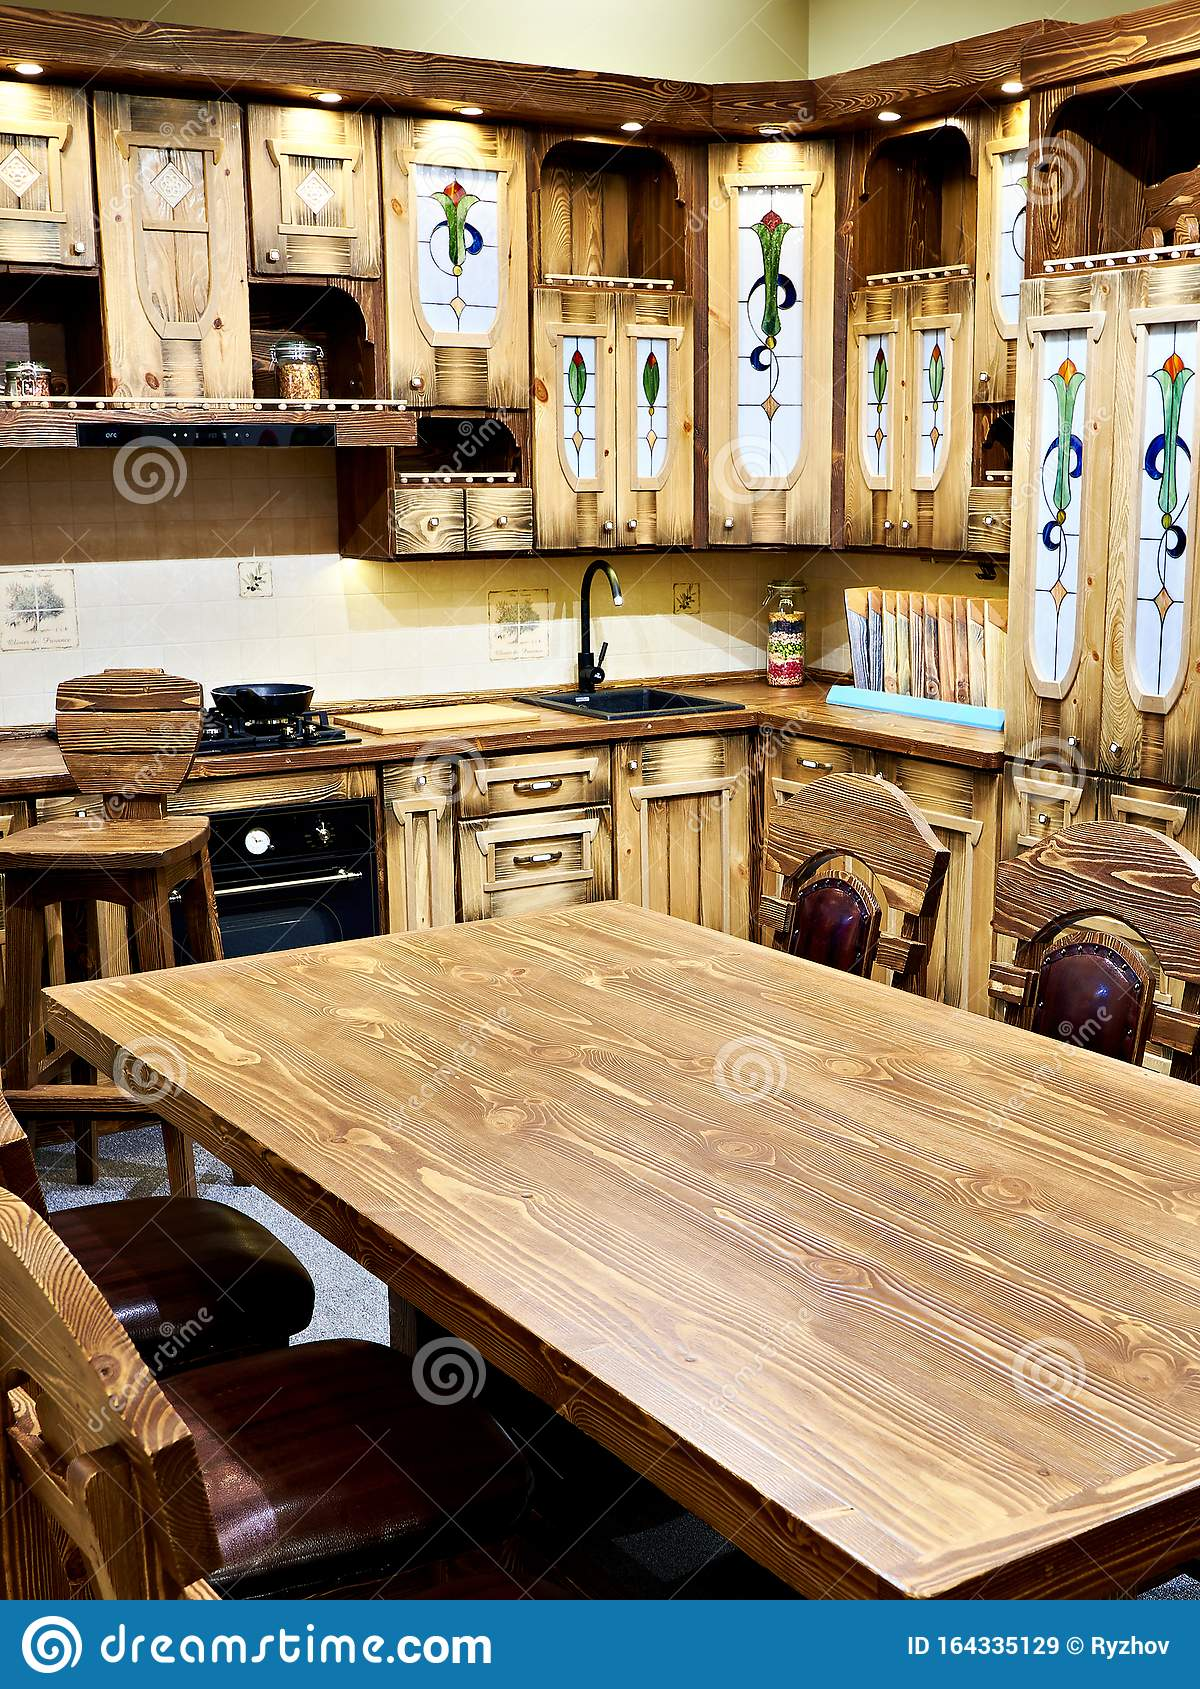 Natural Wood Kitchen Furniture Vintage Stock Image Image Of Texture Counter 164335129